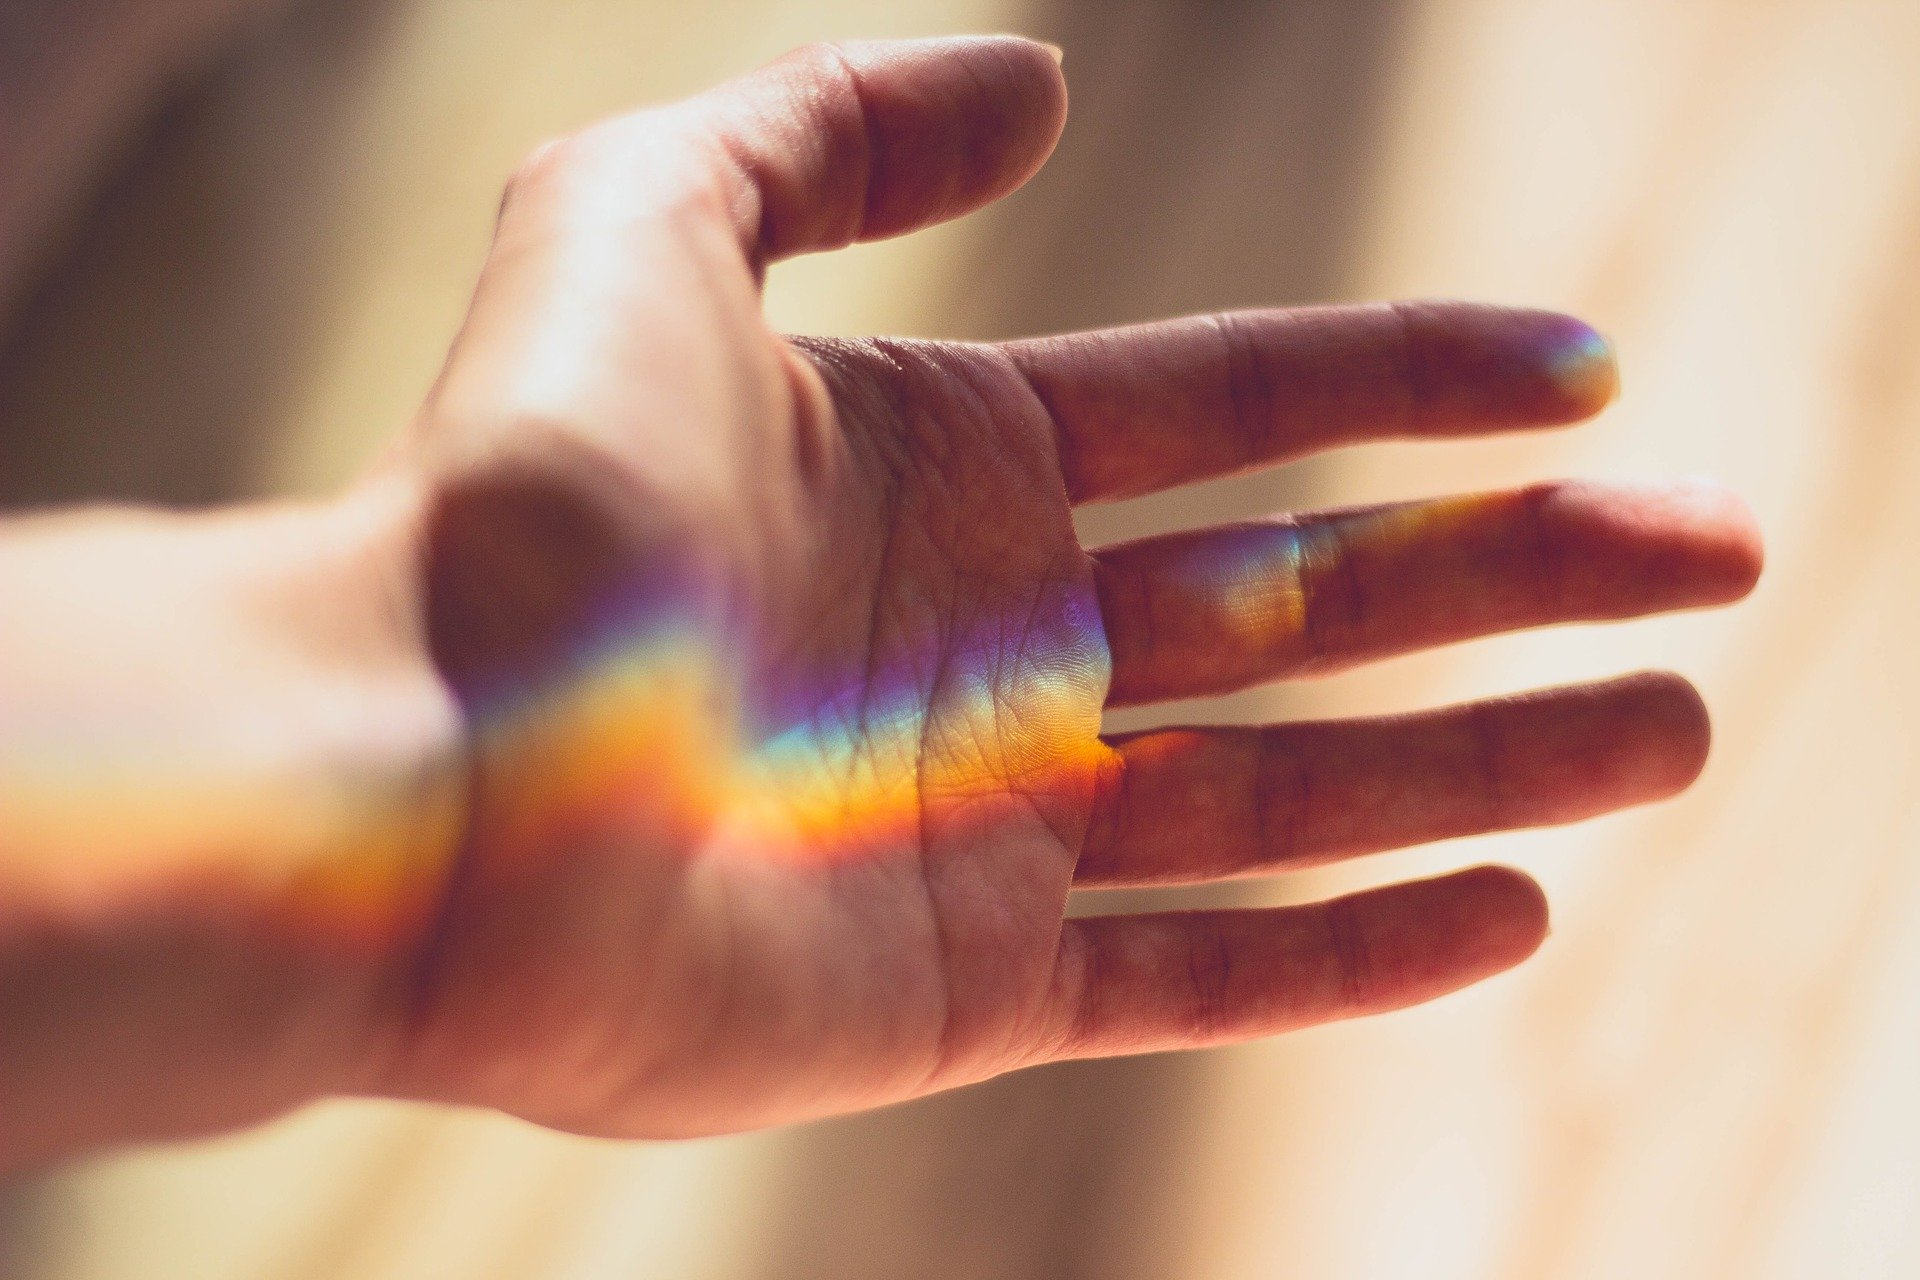 closeup of person's hand in beam of light, rainbow effect, anti-ageing for hands